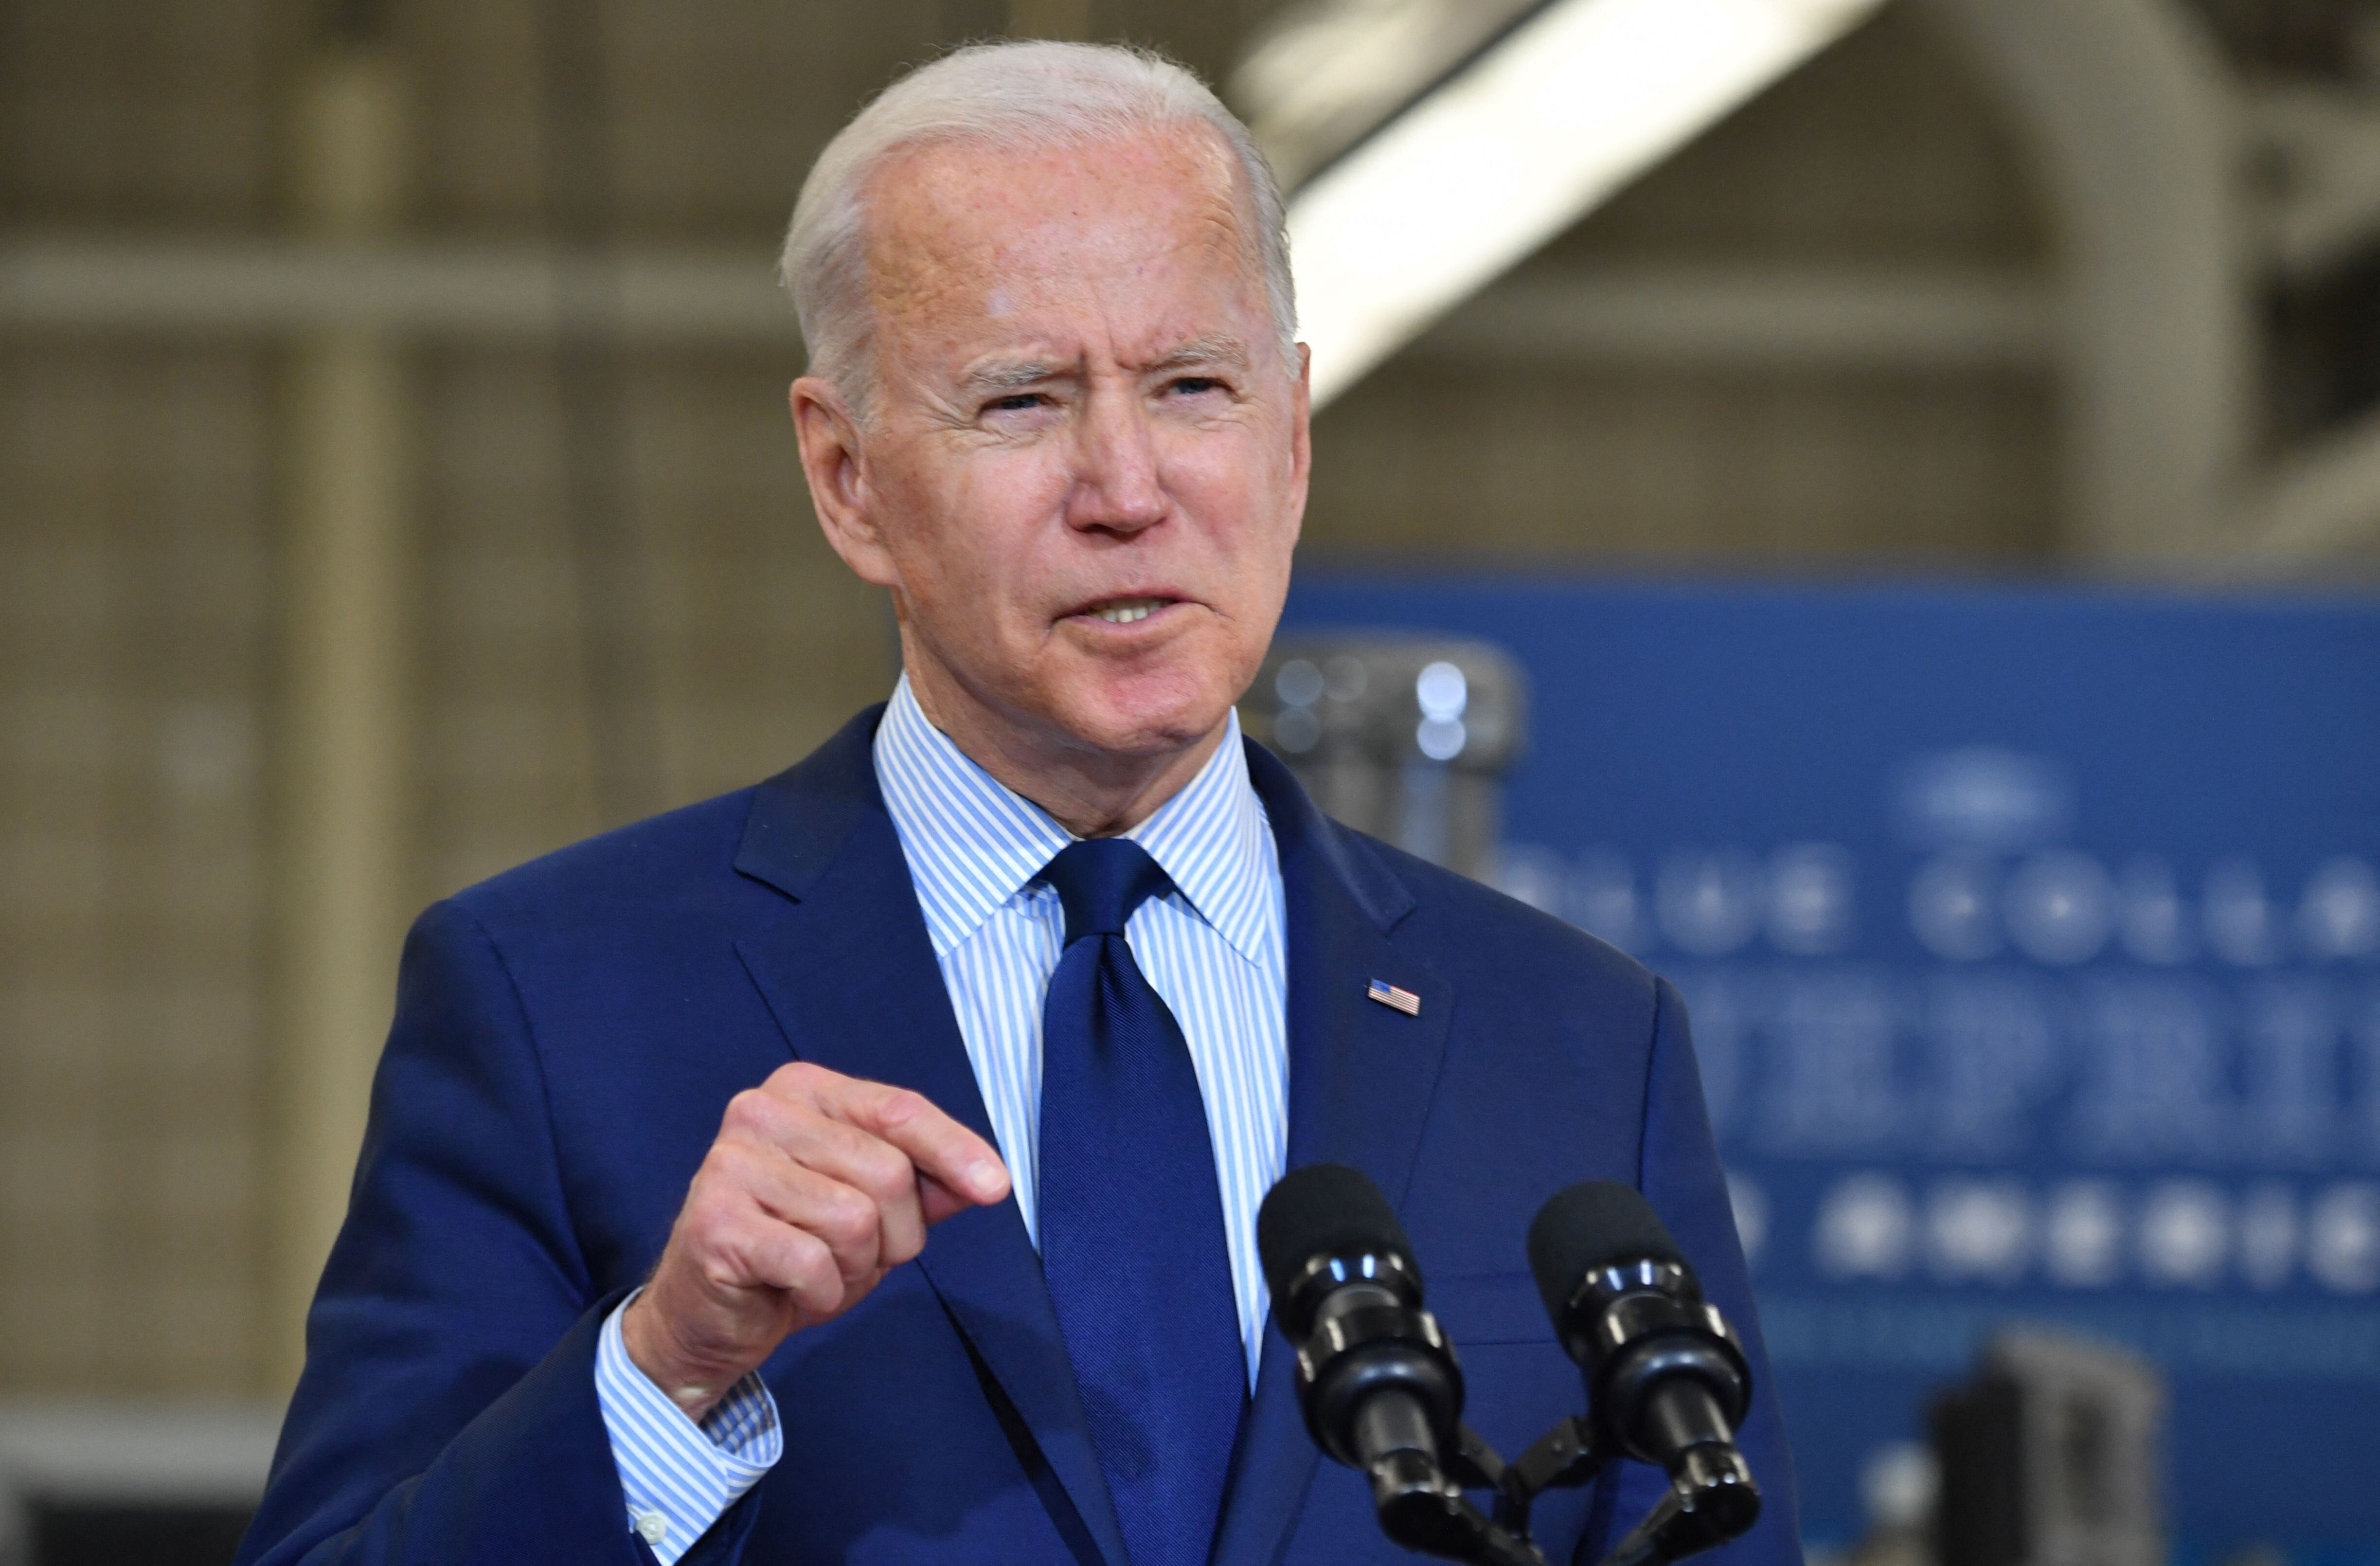 Biden speaks on the economy at Cuyahoga Community College Manufacturing Technology Center, on May 27, 2021, in Cleveland, Ohi